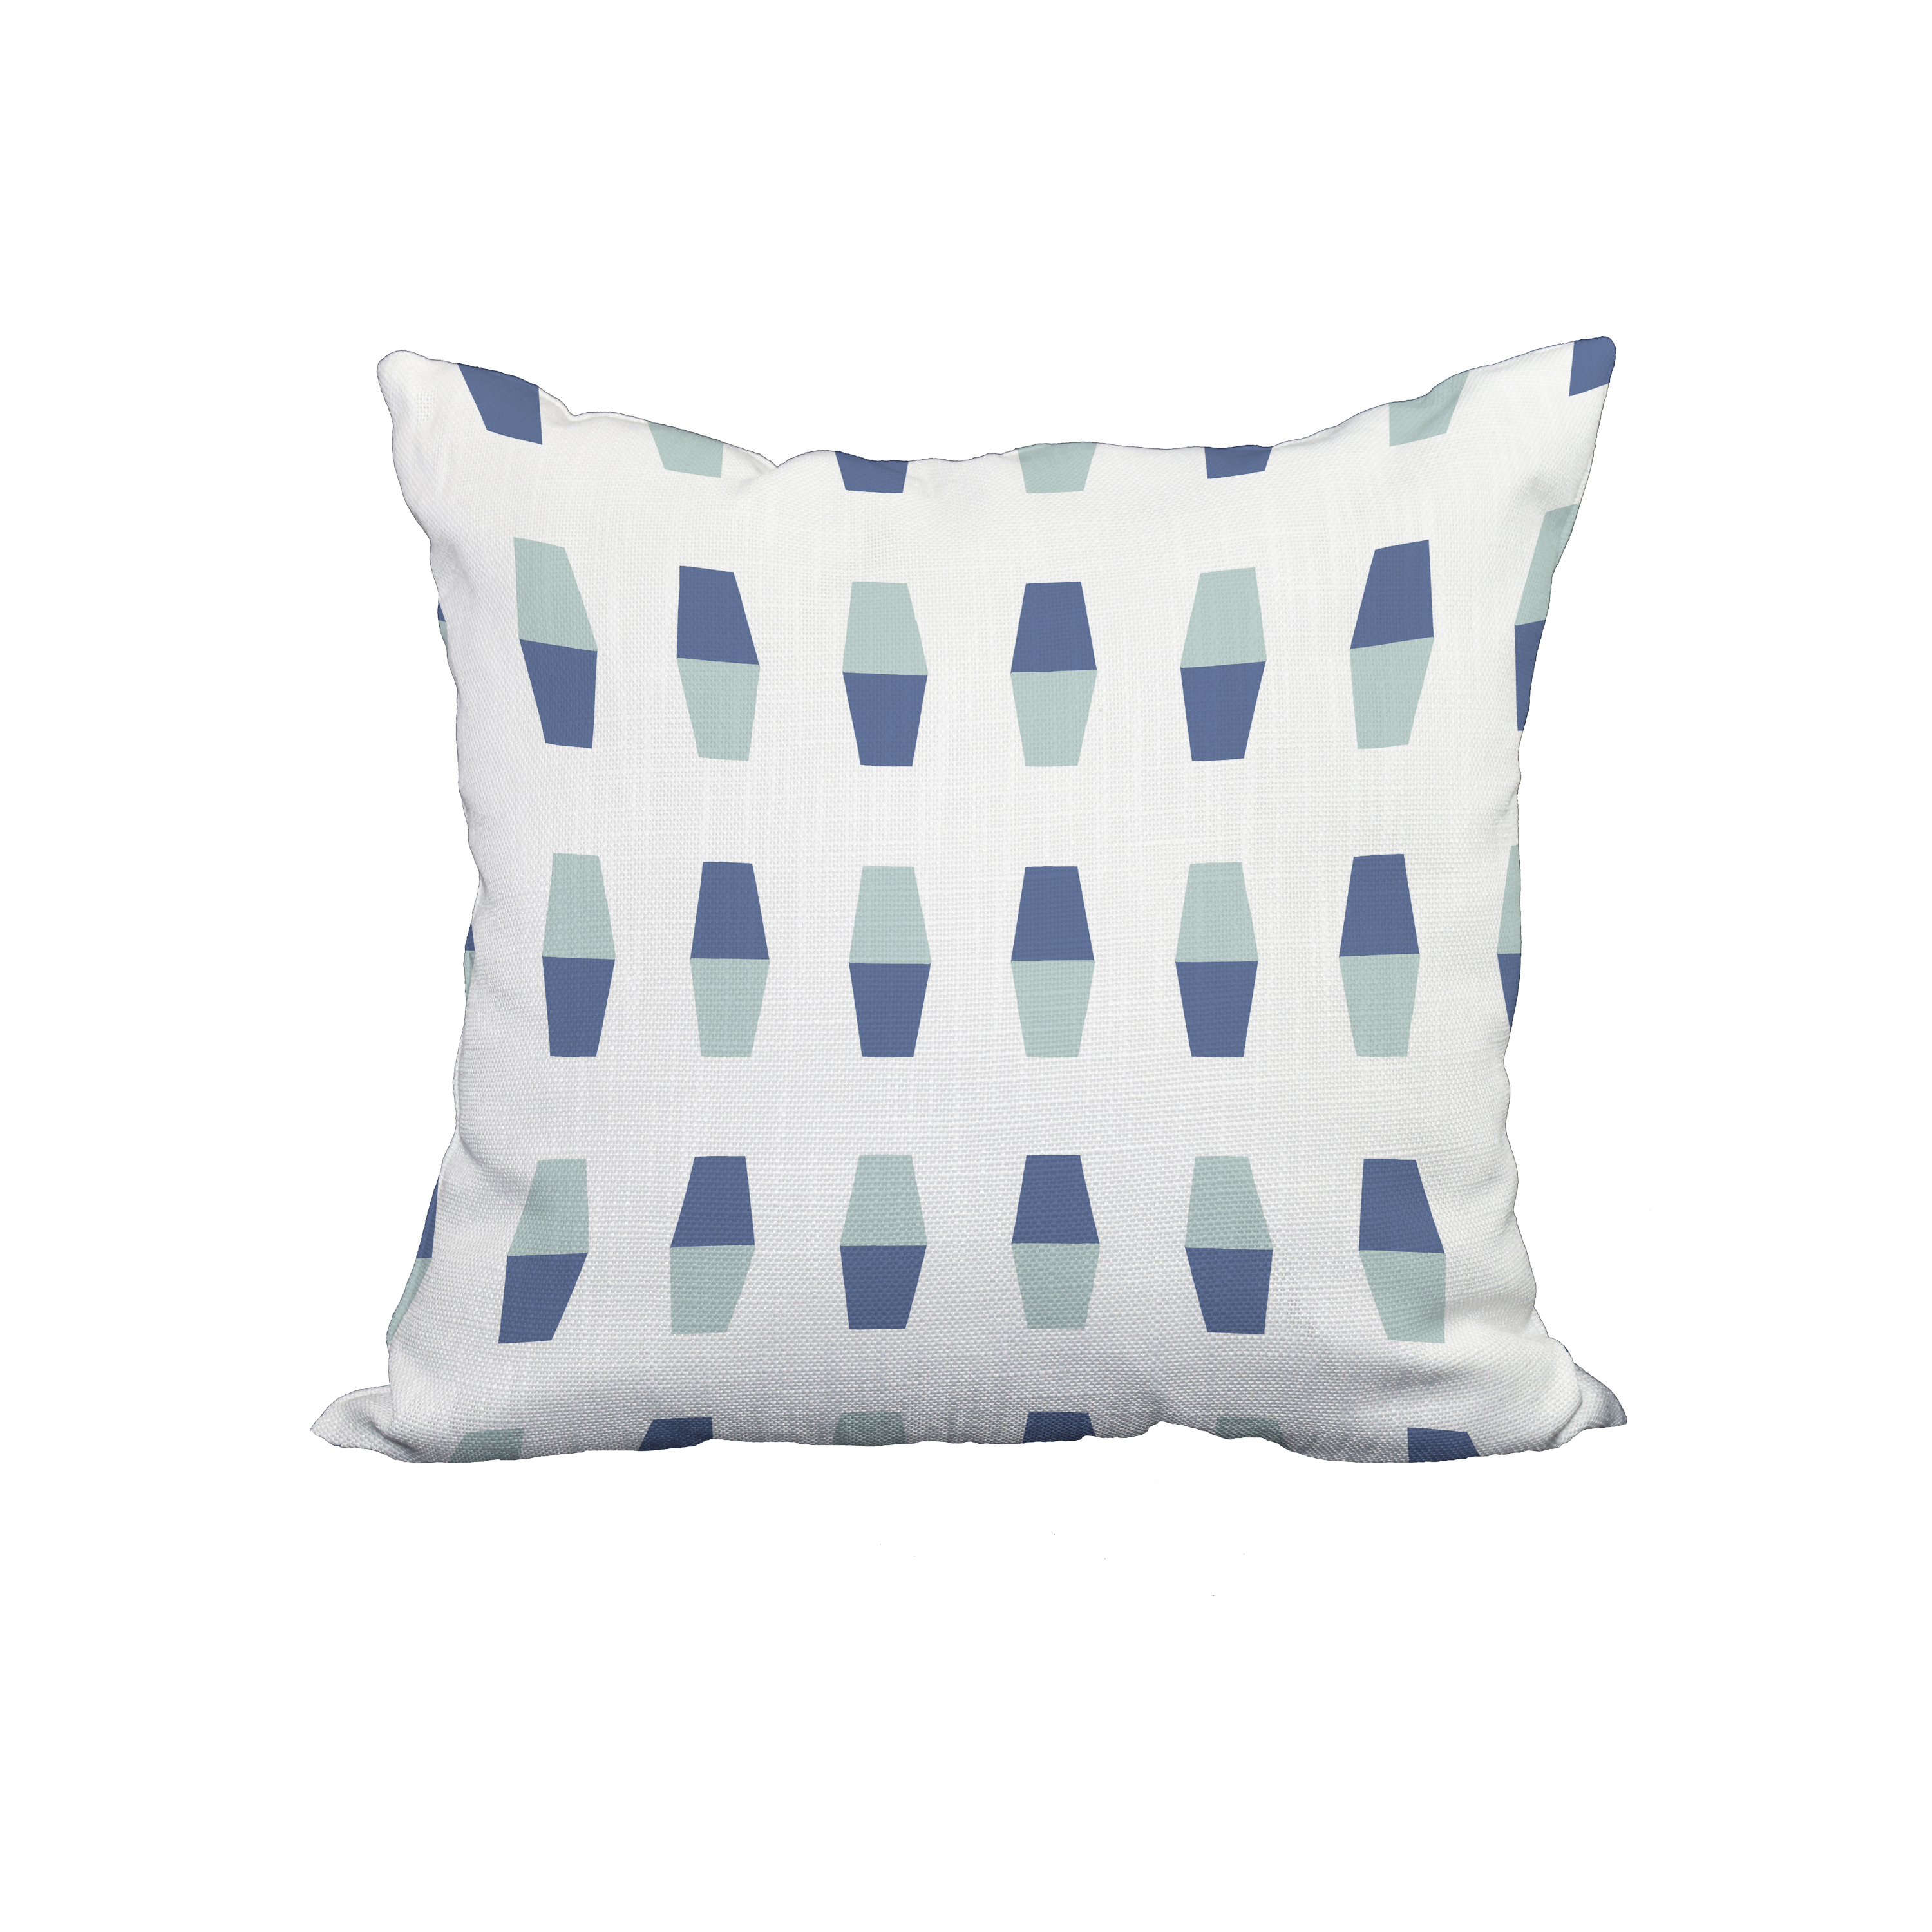 18 x 18 Inch Bowling Pins Navy Blue Geometric Print Decorative Polyester Throw Pillow with Linen Texture